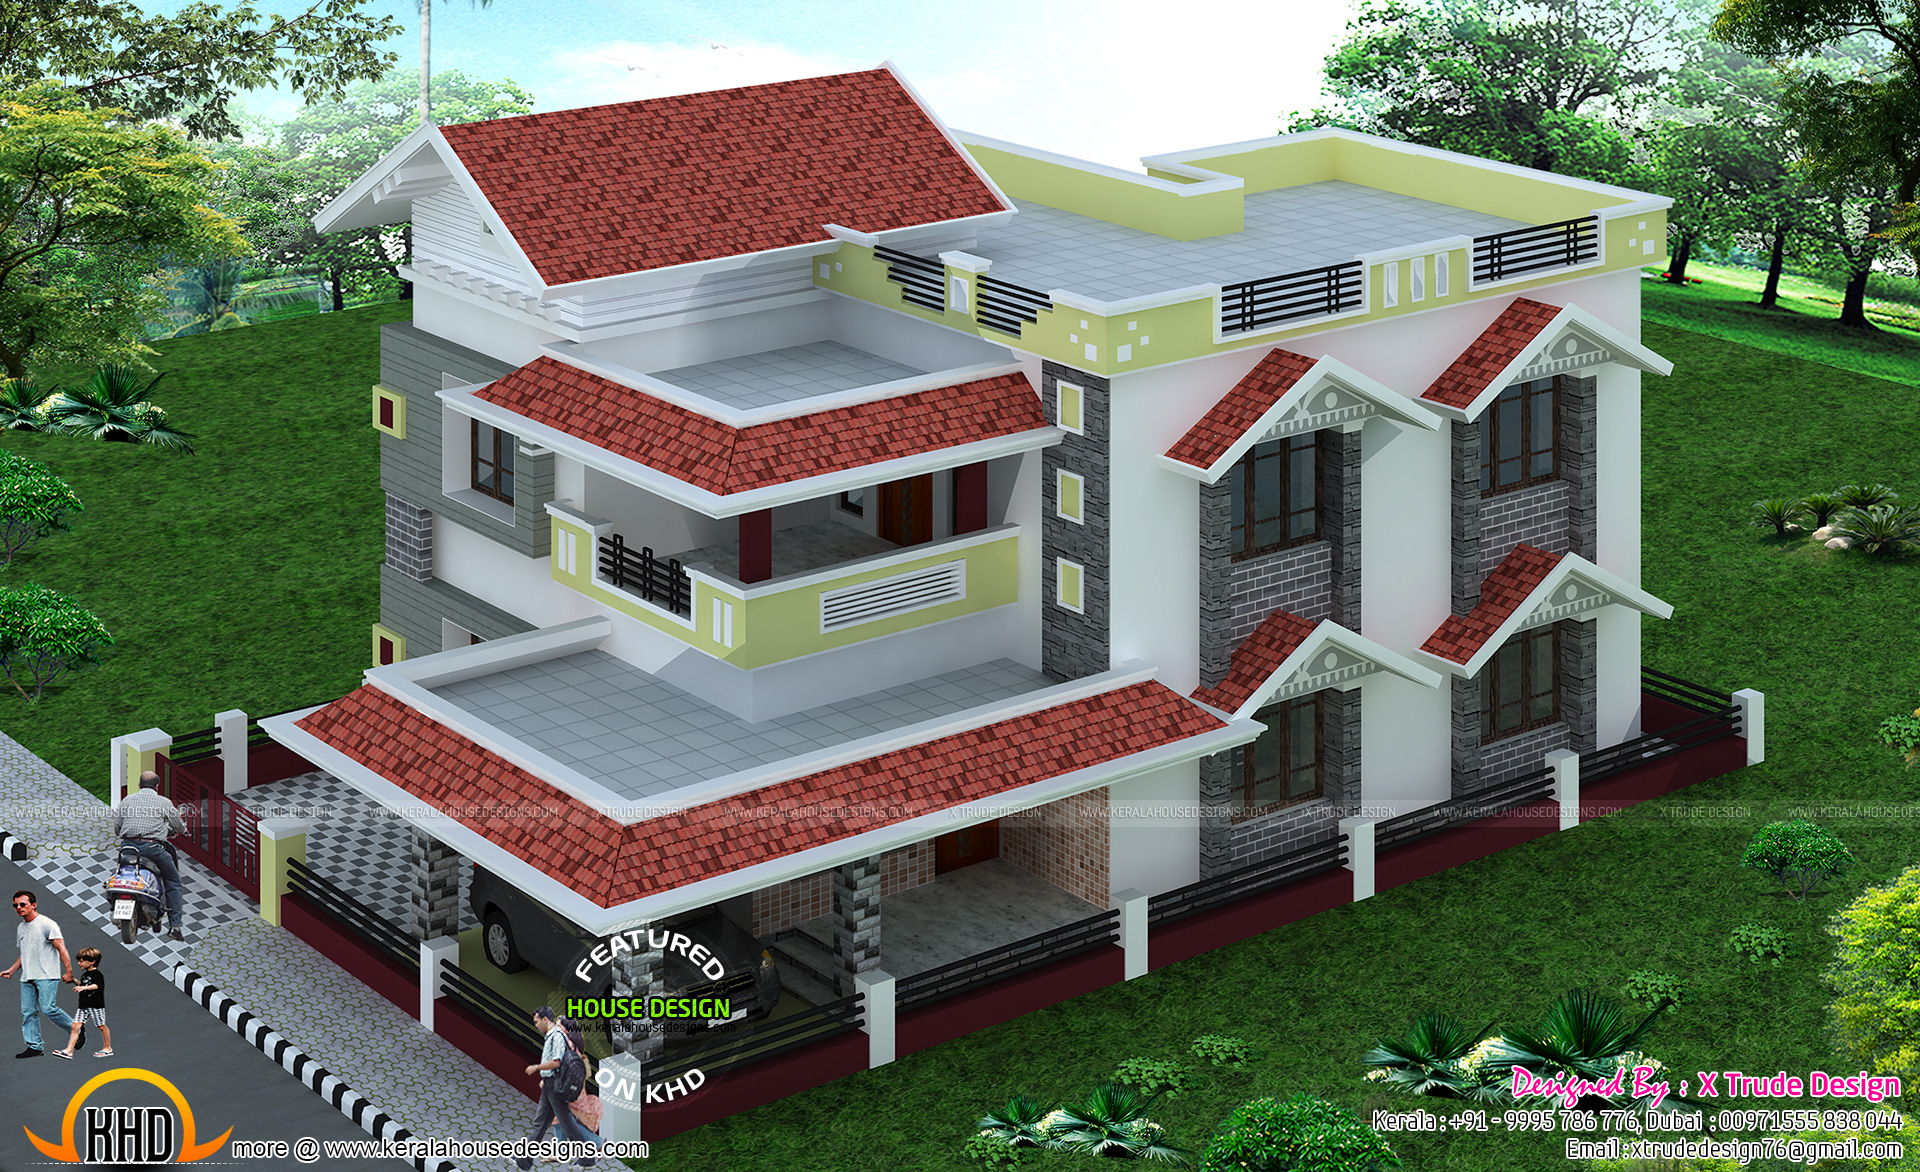 2581 sq ft house by x trude design kerala home design for House front model design